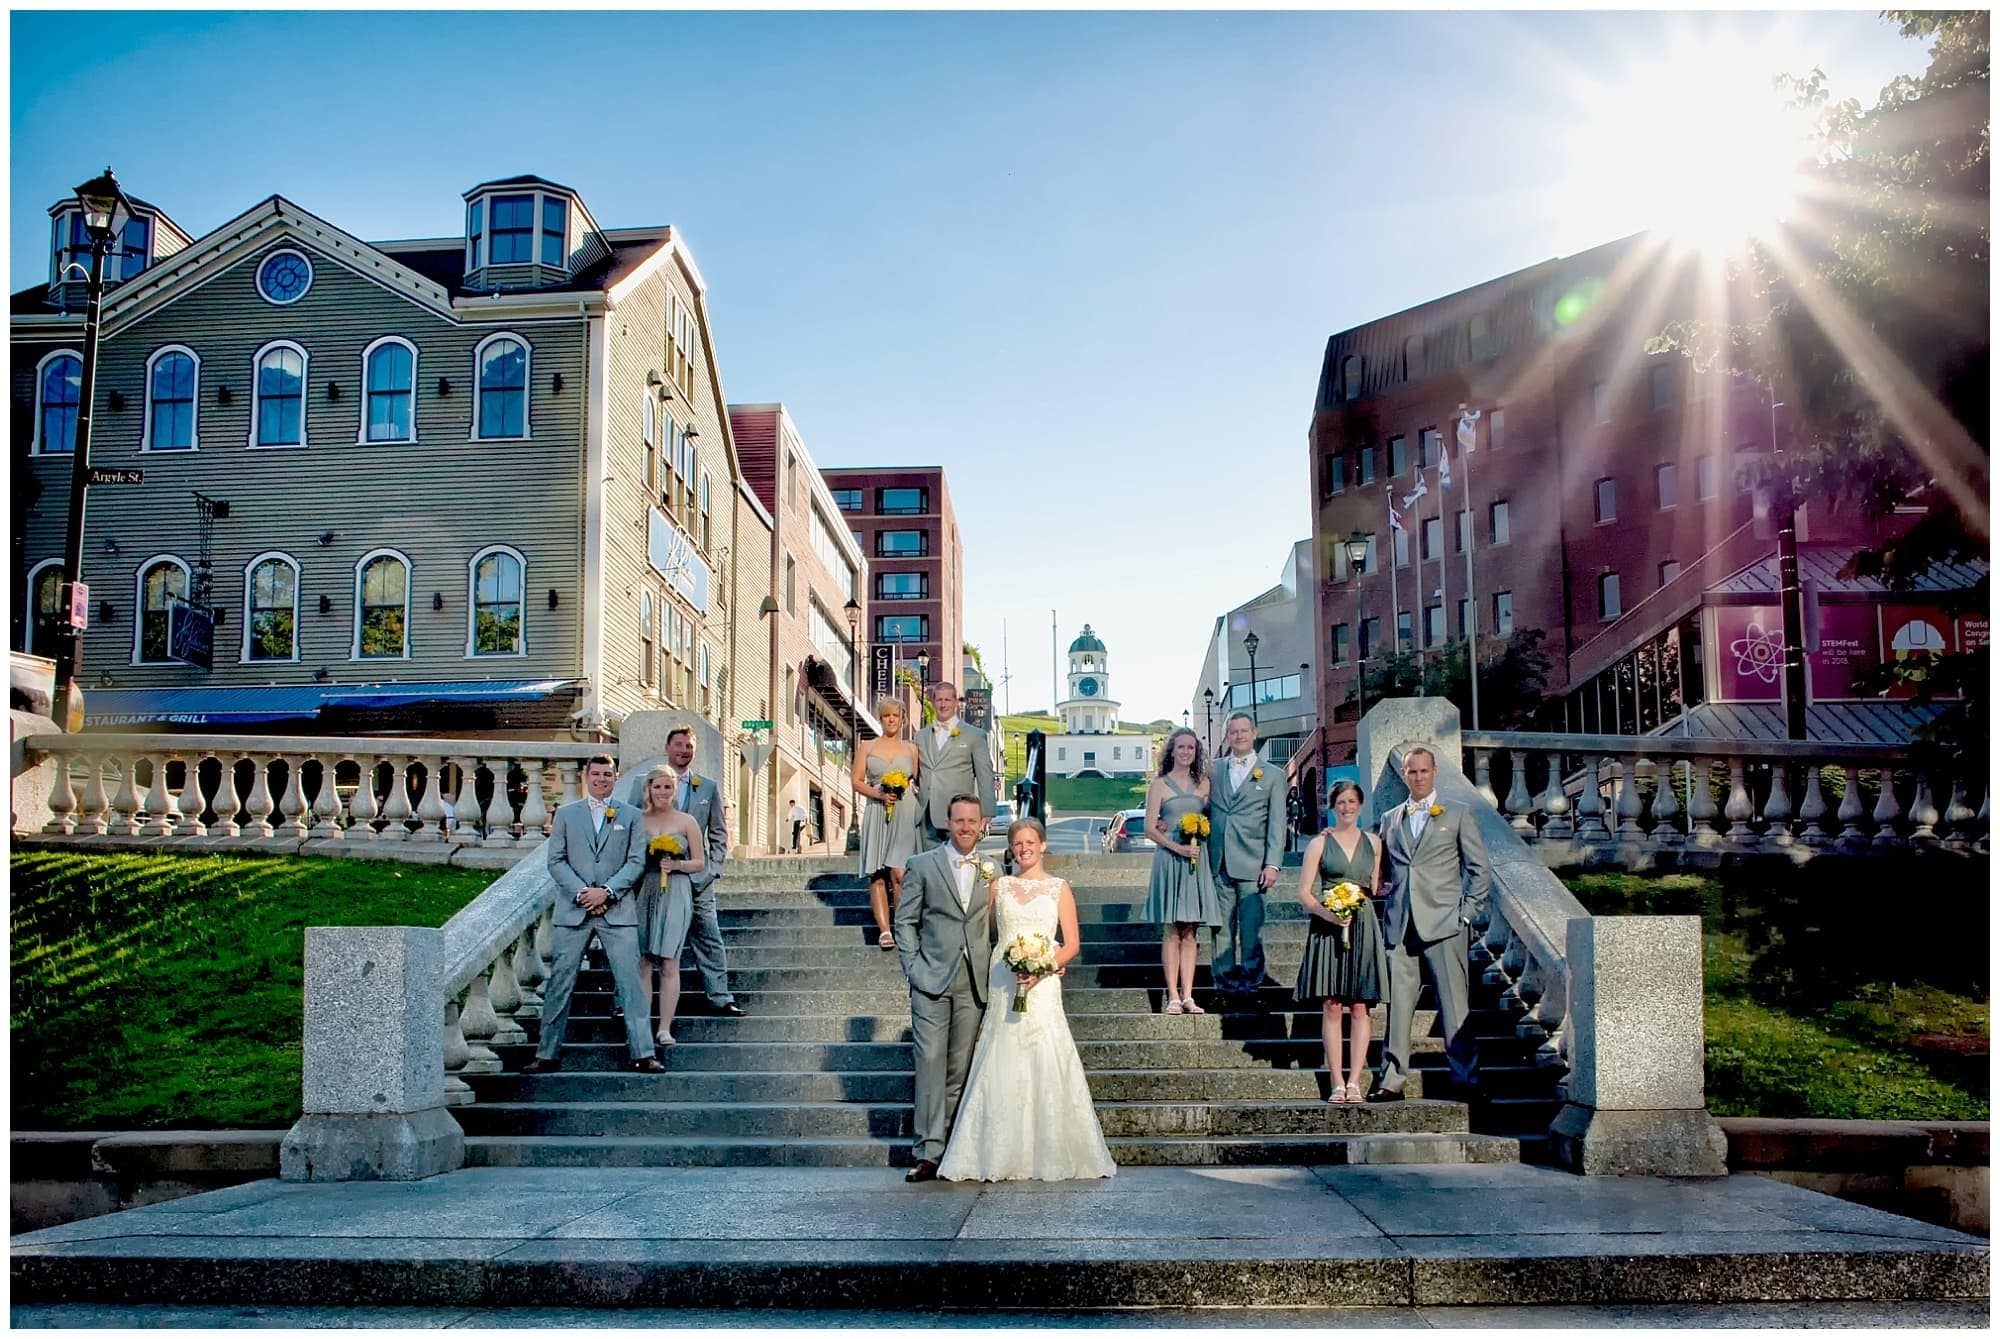 The wedding party photos with the bride and groom at sunset in the Grand Parade, Halifax NS.